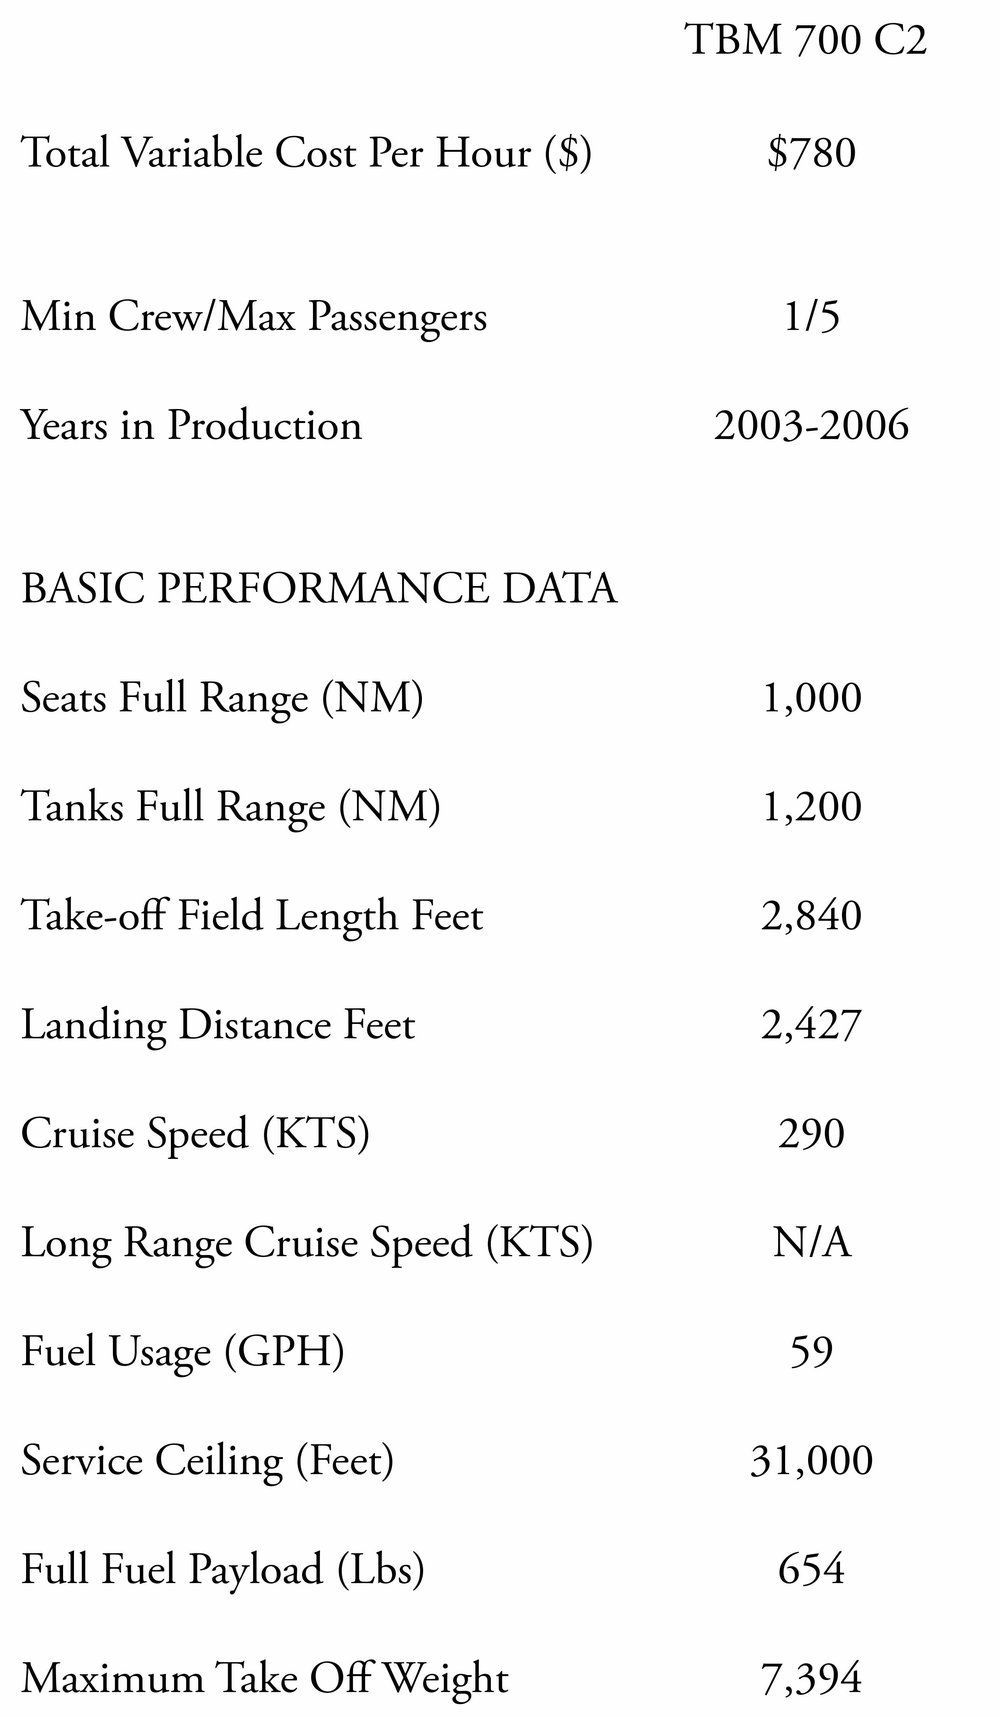 TBM 700 Spec sheet: landing and take- off distance, long range cruise speed, fuel usage, service ceiling, passenger to crew ratio, variable costs and production timeline.